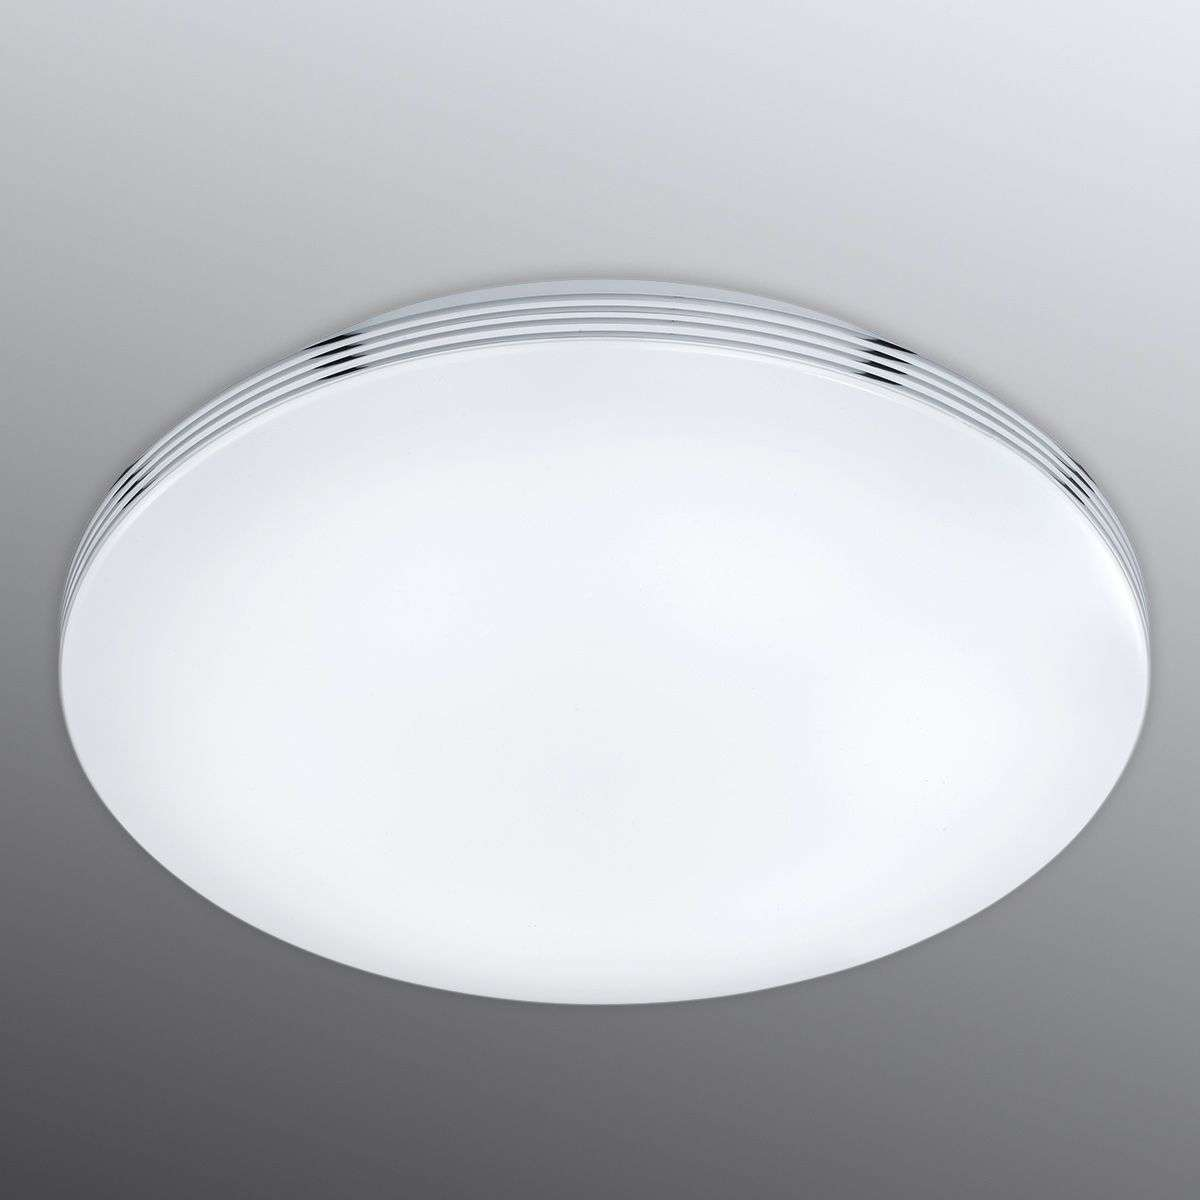 Dimmable apart led bathroom ceiling light for Bathroom ceiling lights